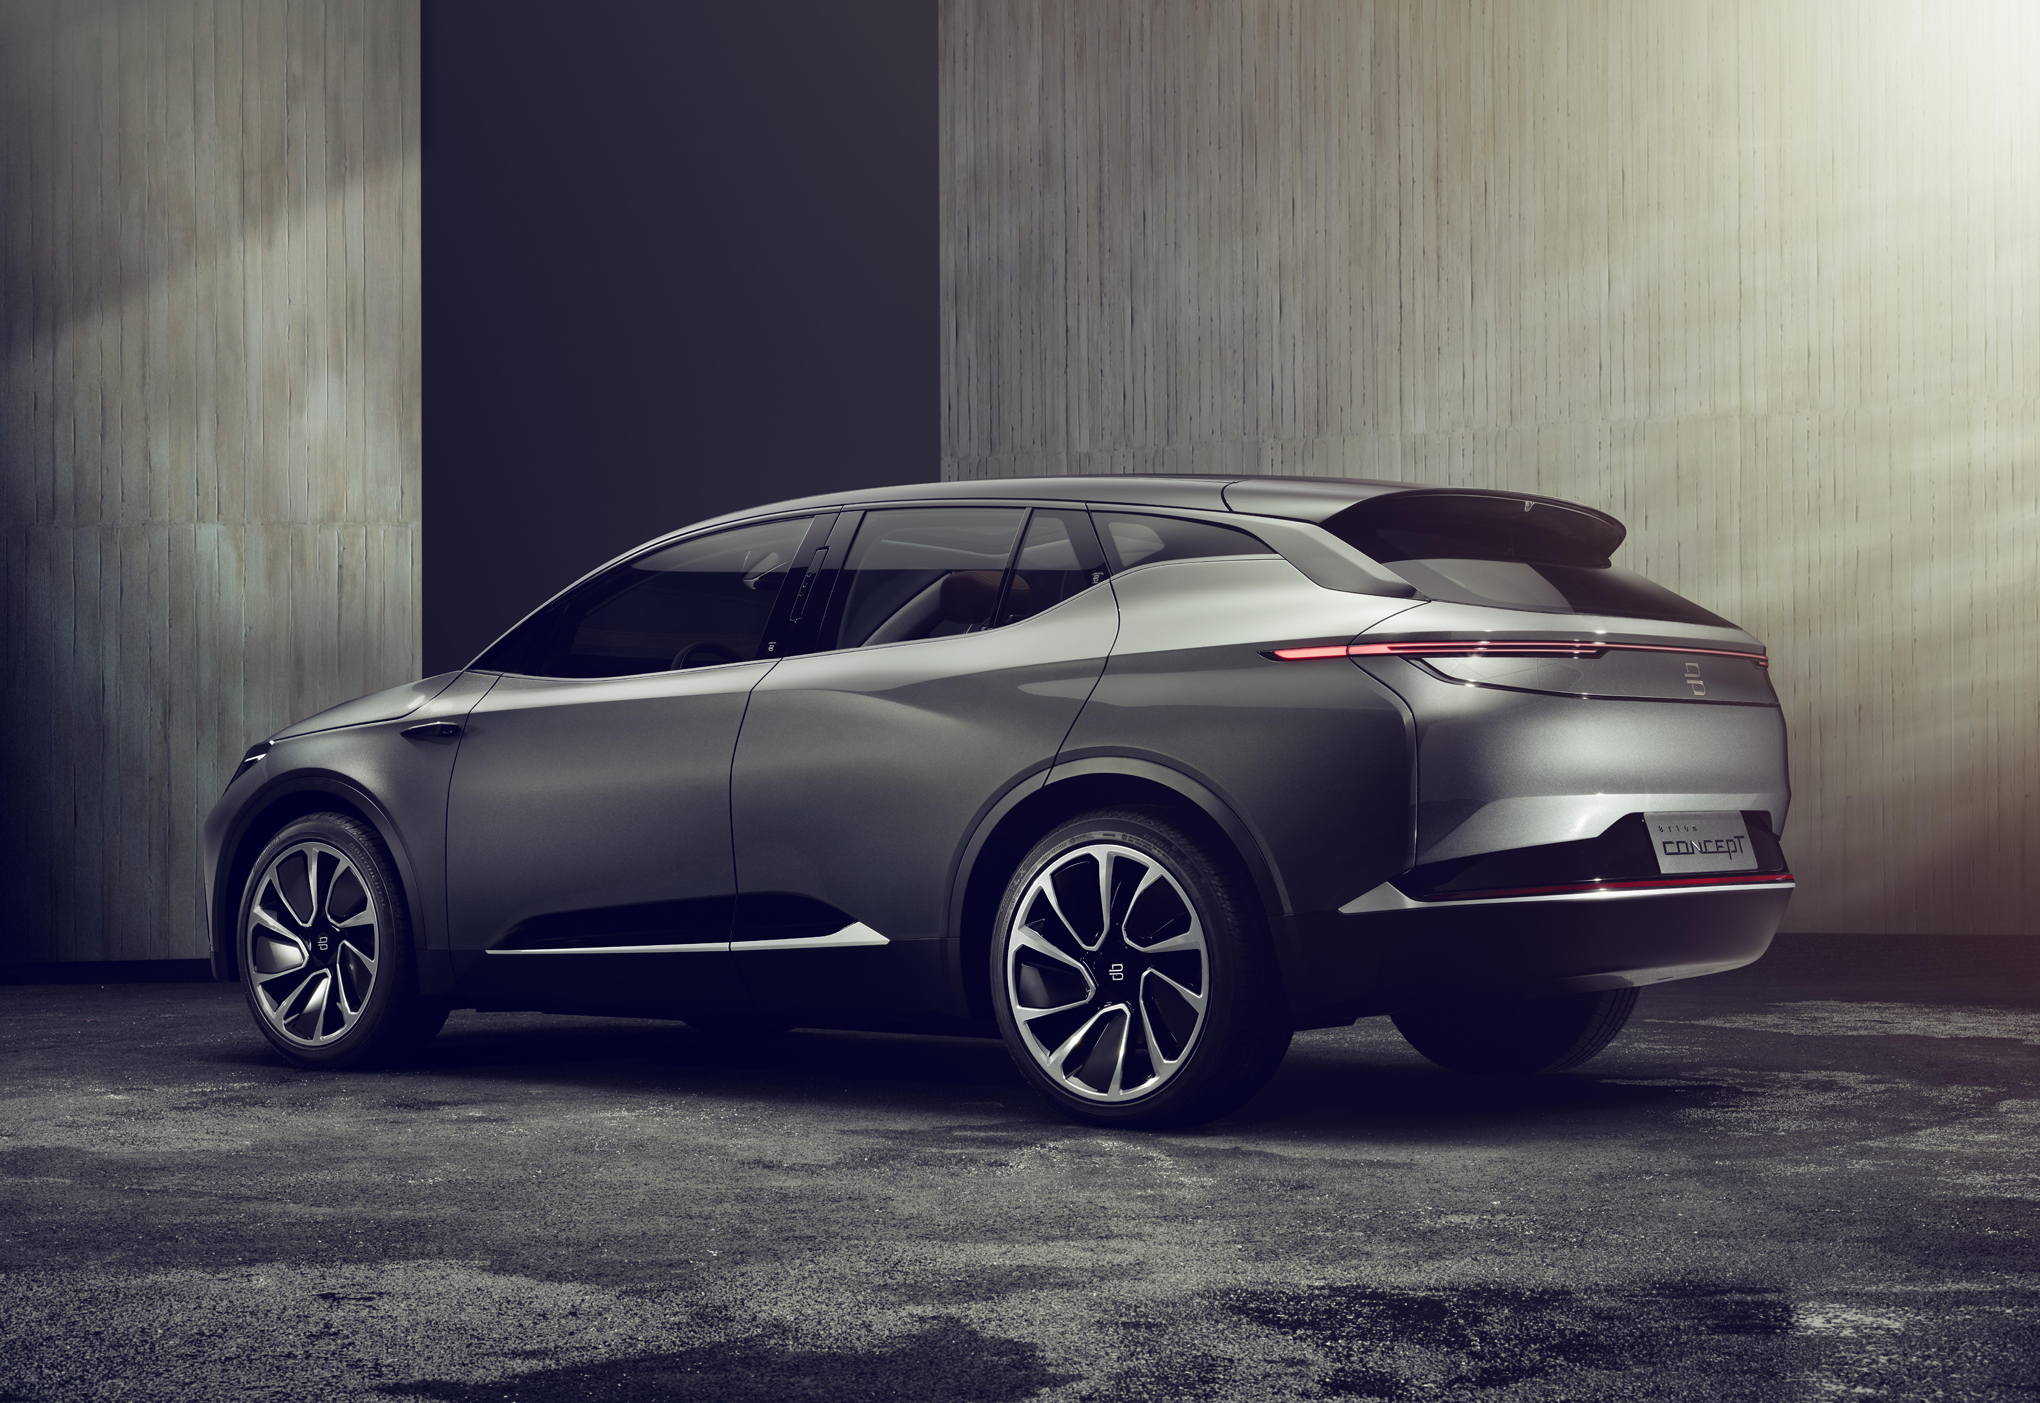 Future Of The Car: Byton's Electric SUV Concept Is Another Wild Stab At The